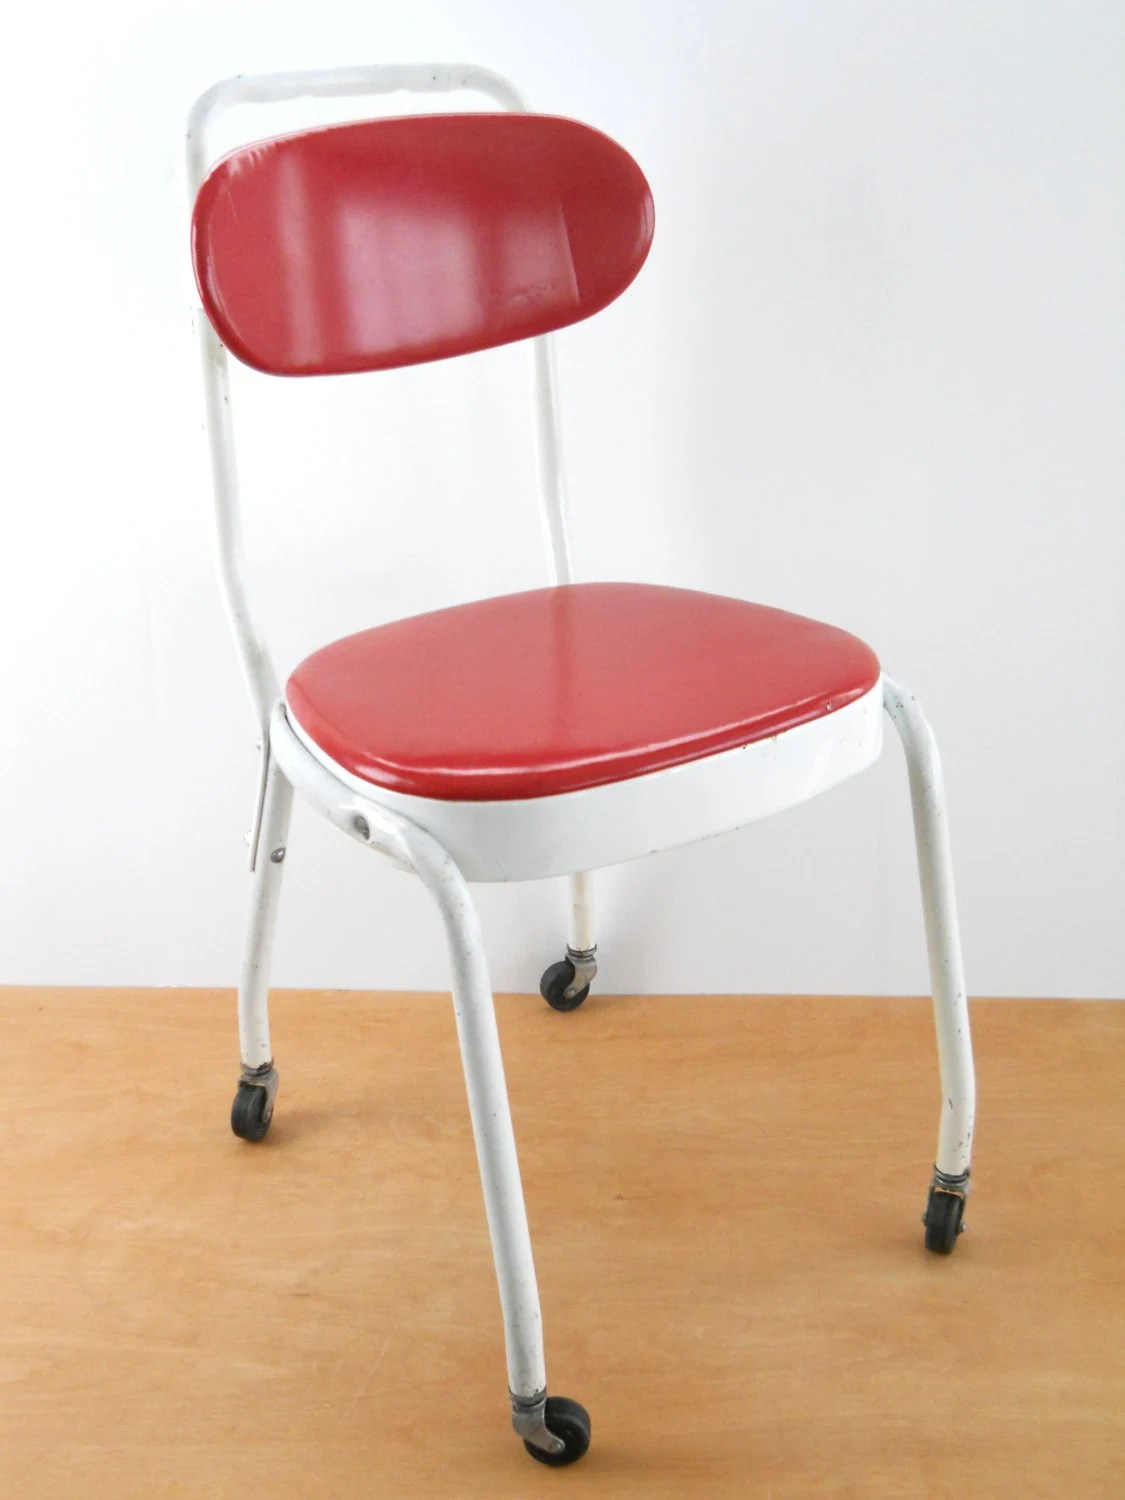 White Rolling Chair Vintage Rolling Maytag Mangle Chair 1960s Red And White